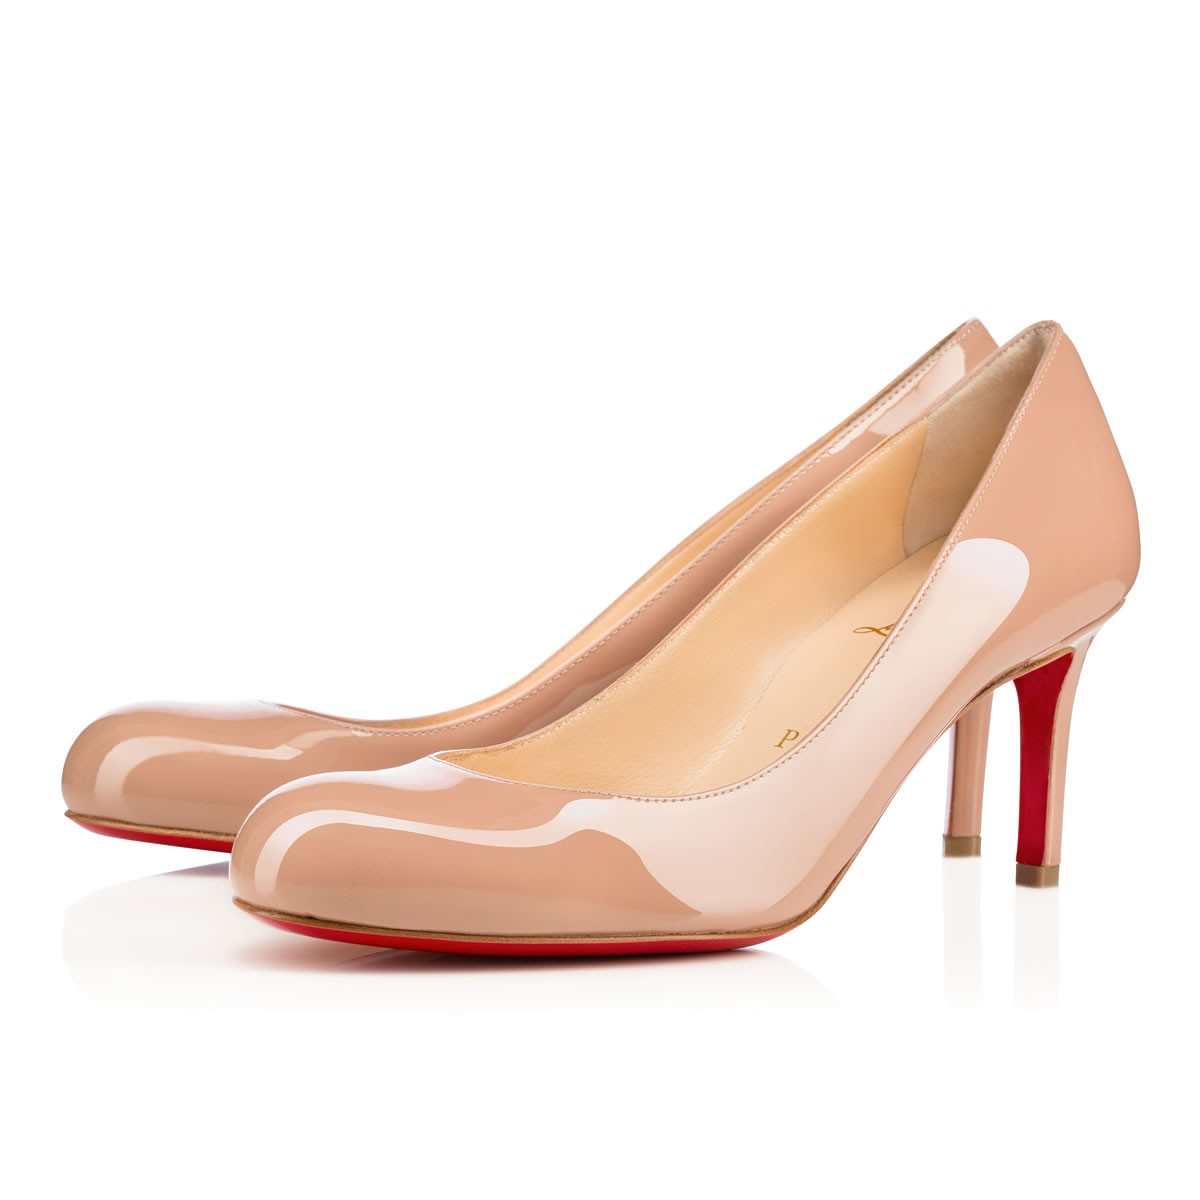 SIMPLE PUMP 70 NUDE Patent Leather - Women Shoes - Christian ... 9404b519b8